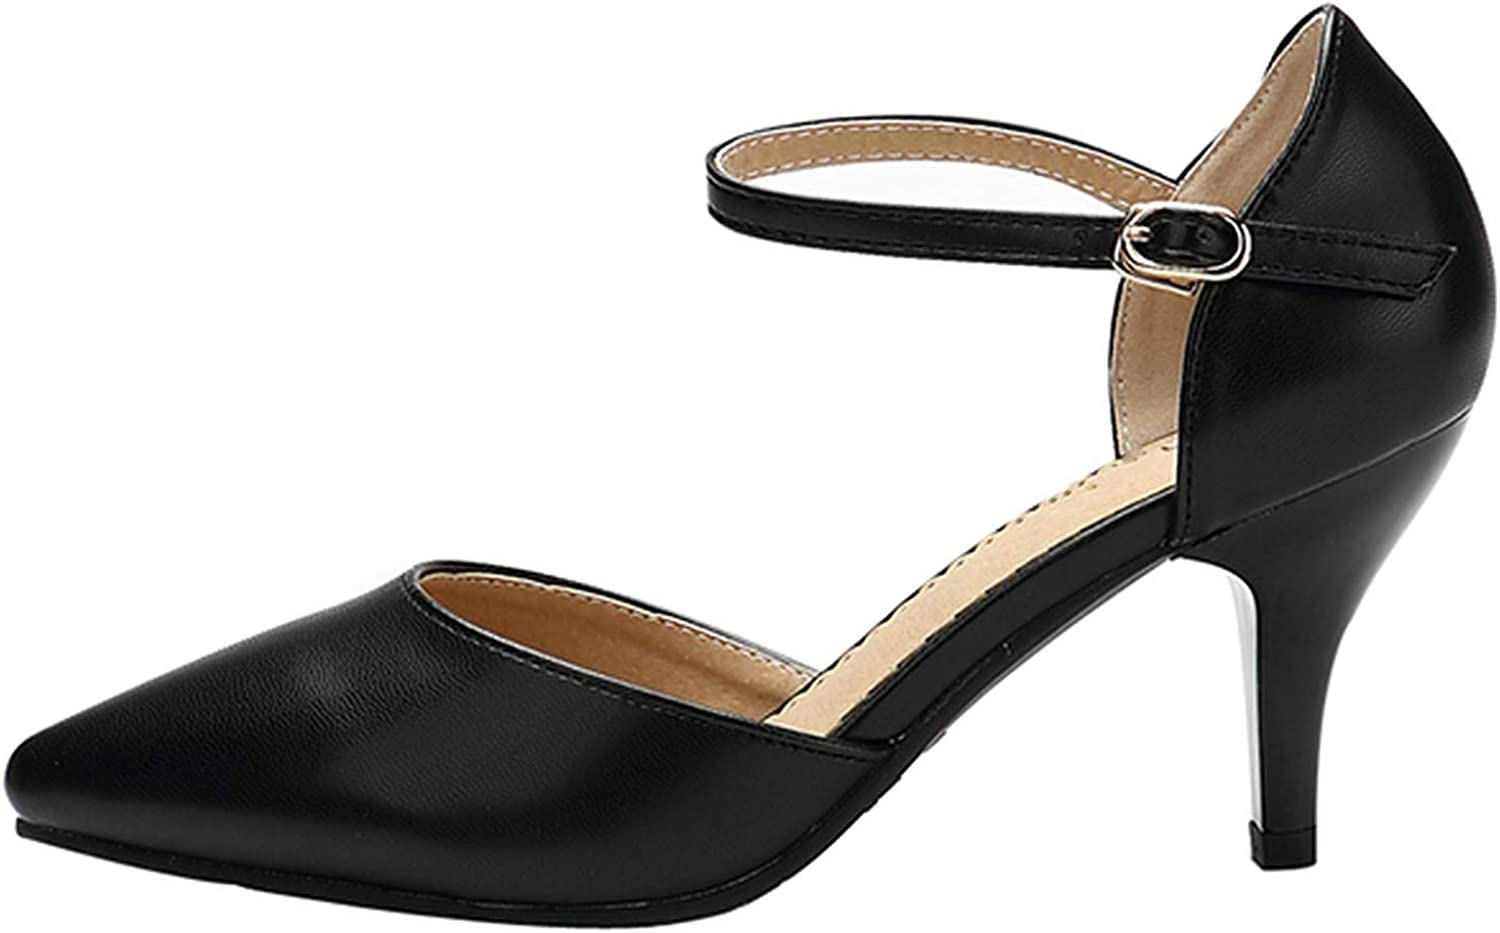 348bfbb514965 Sandals High Heels shoes Ladies Sexy Big Size Leather Sandals High ...